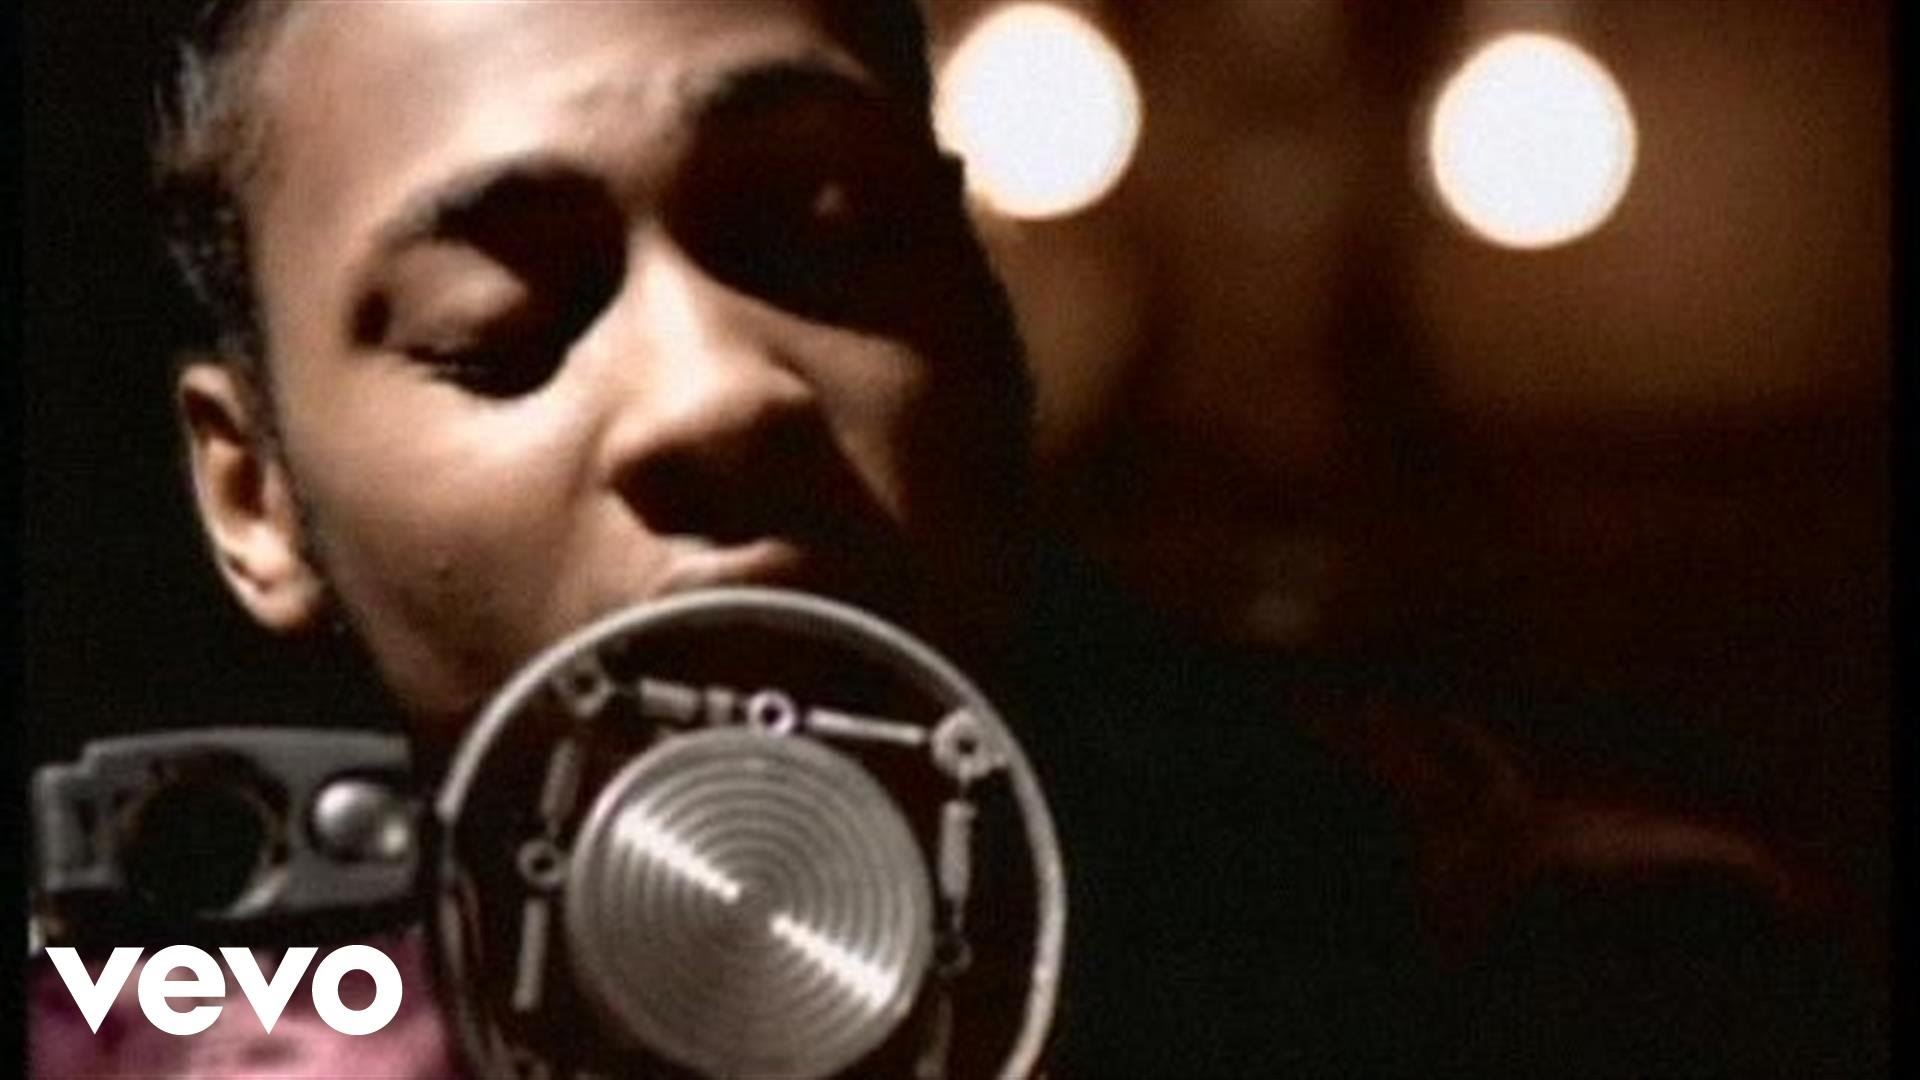 dangelo-dreamin-eyes